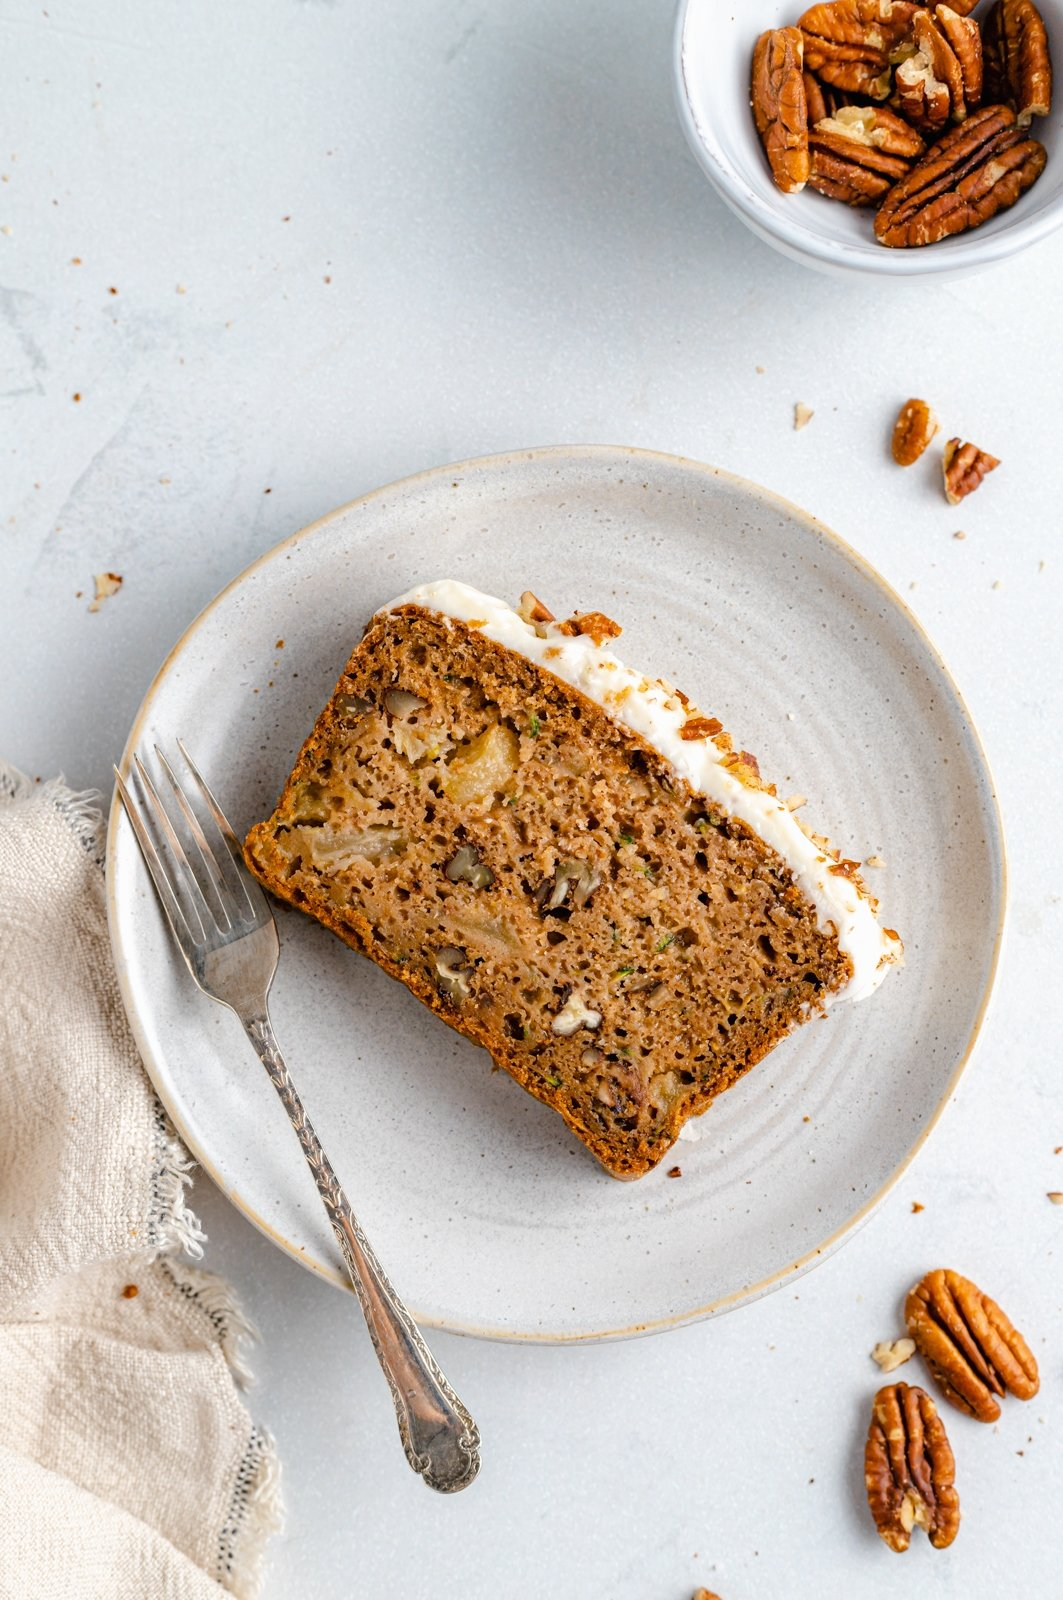 slice of zucchini apple bread on a plate